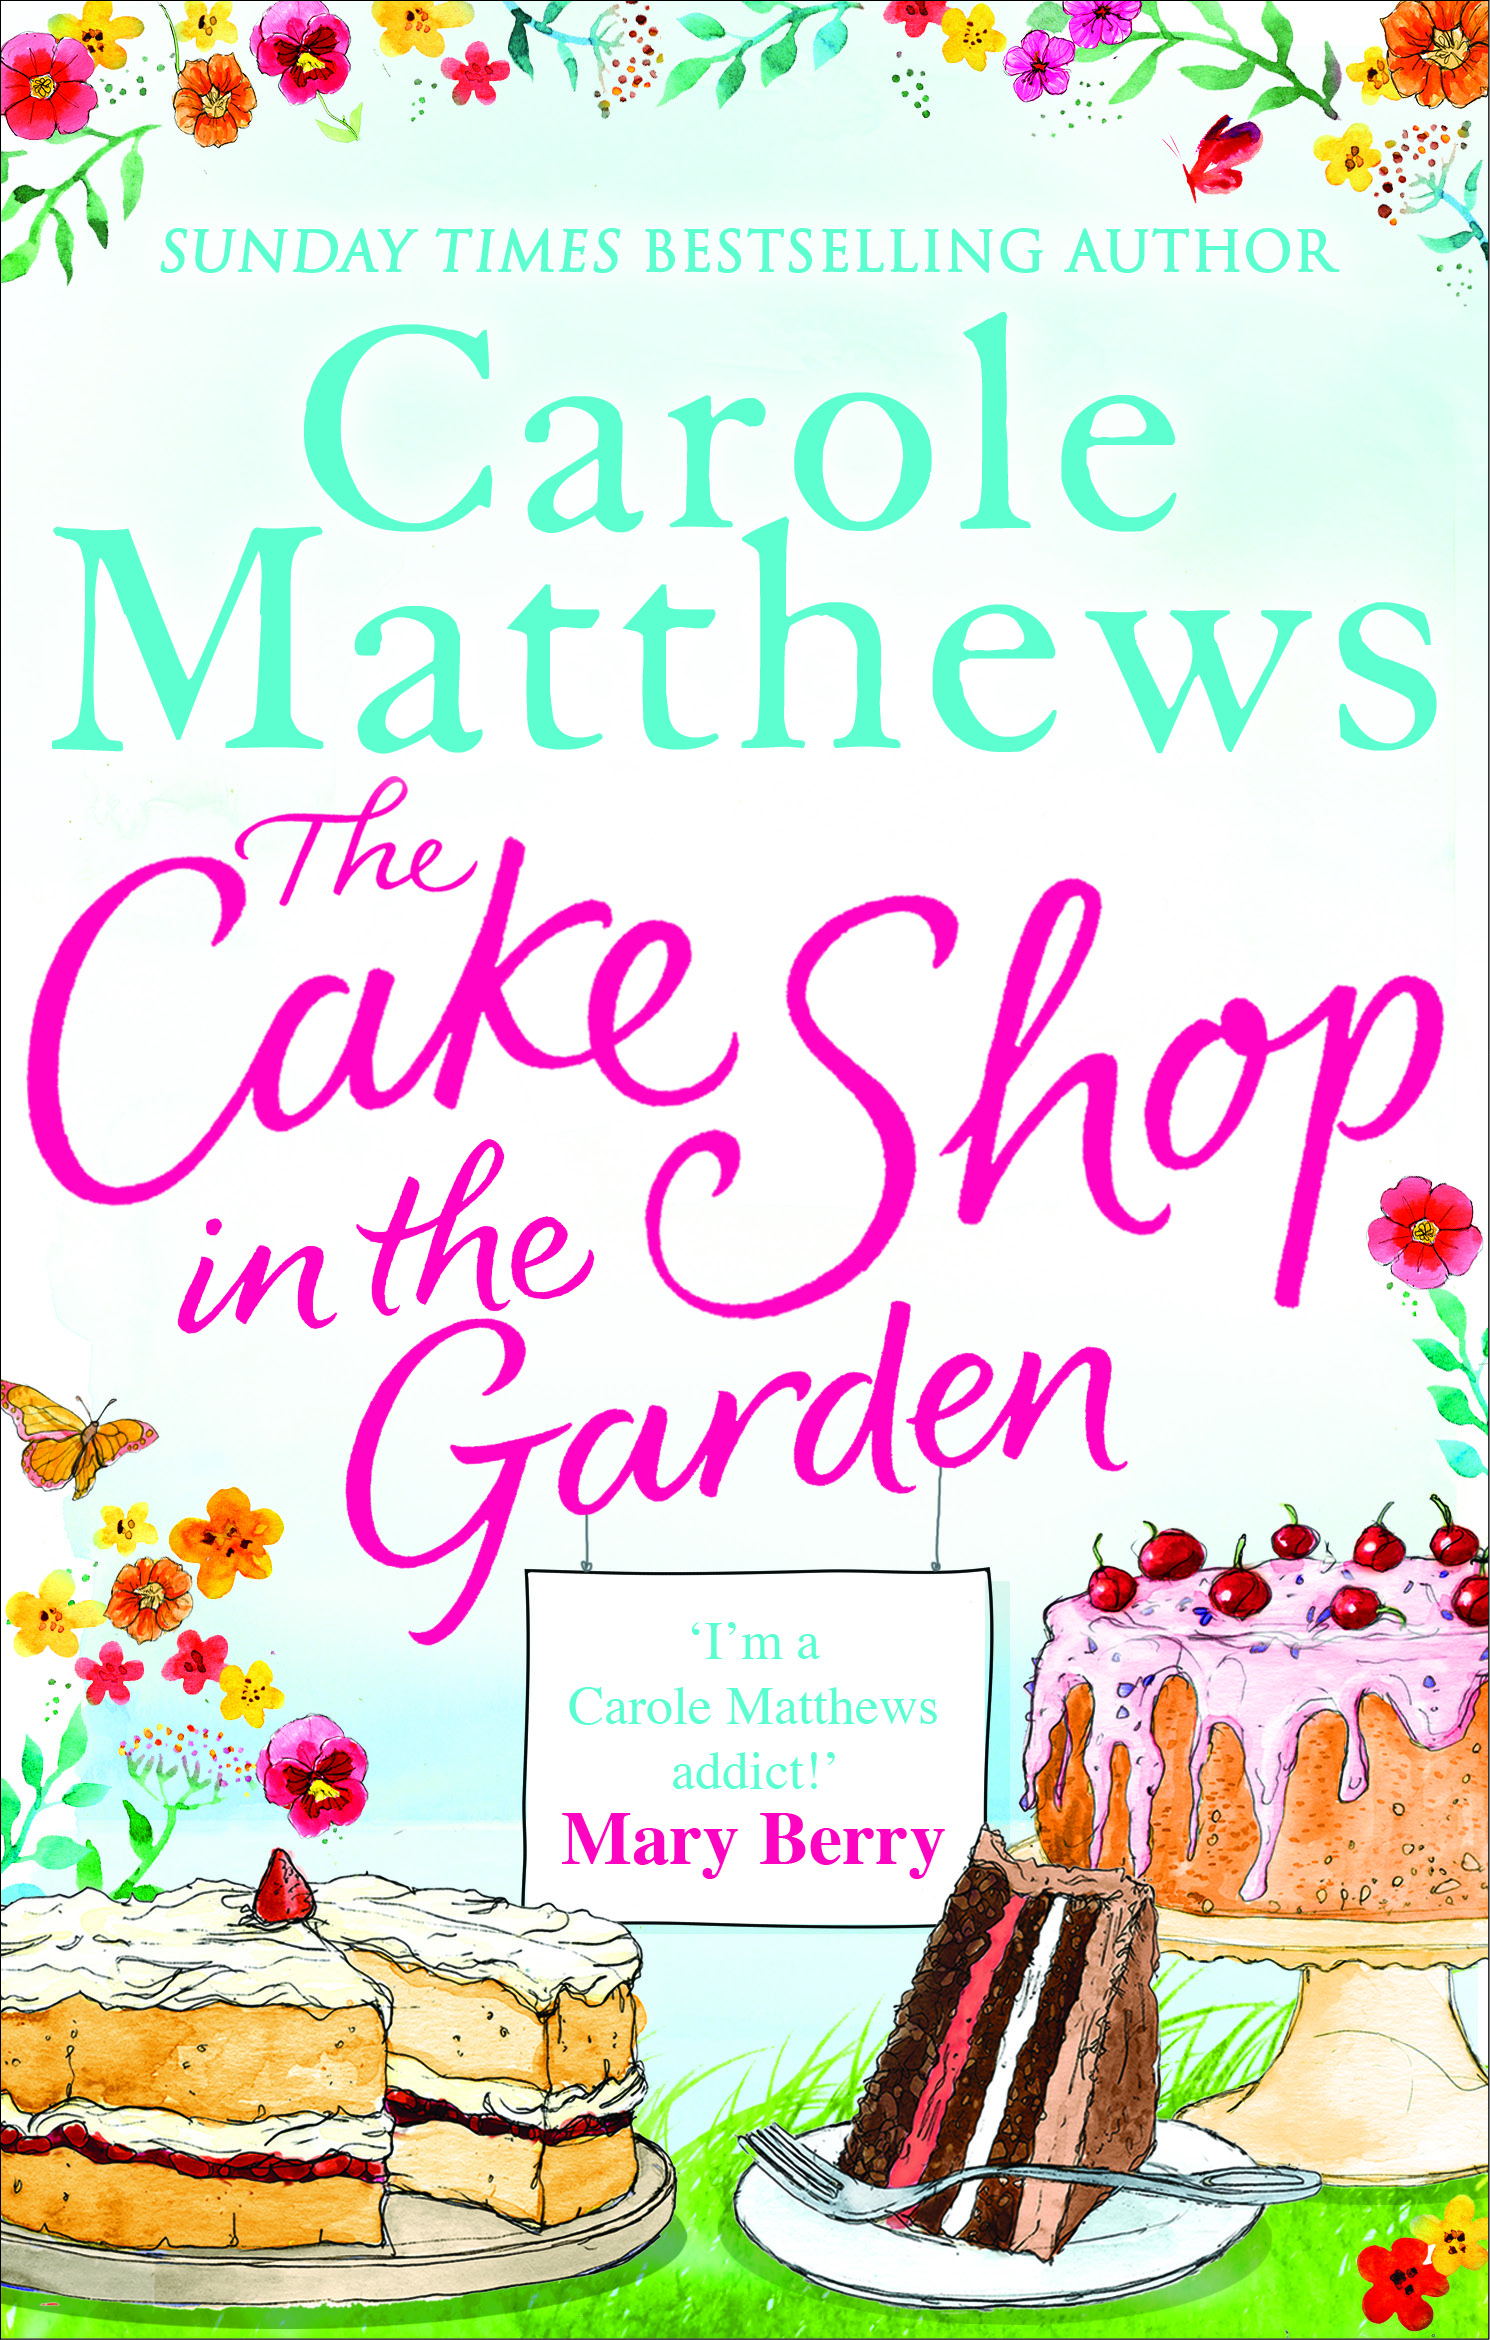 Carole Matthews The Cake Shop in the Garden